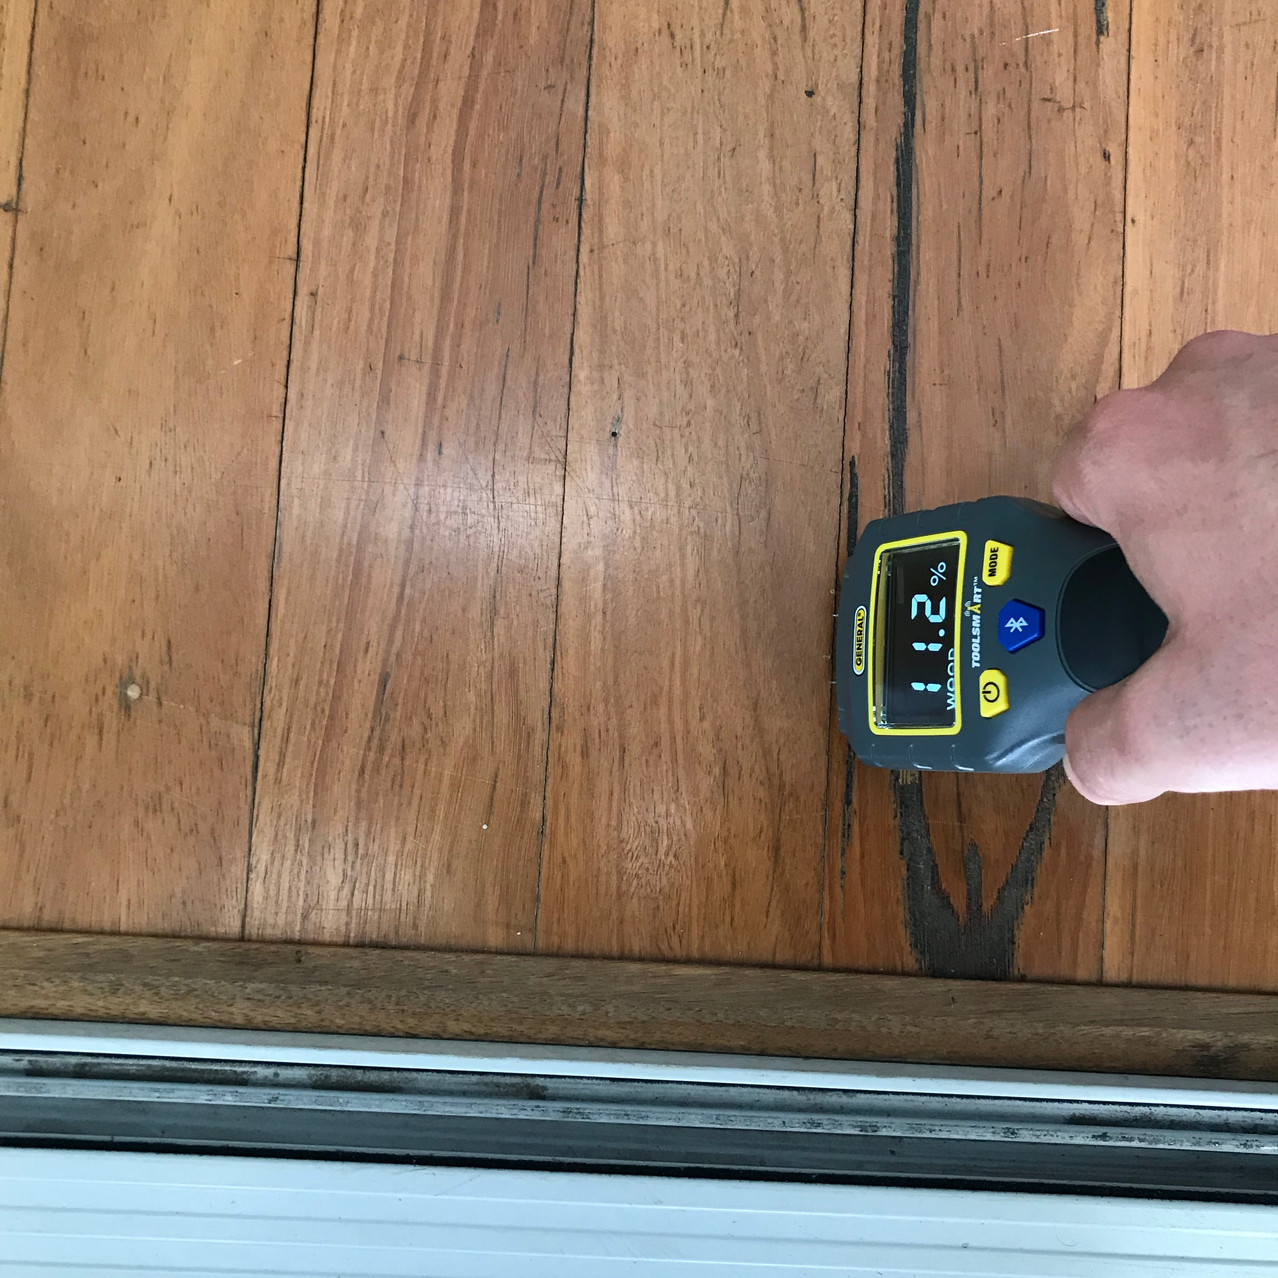 Conspar was engaged by the owner of this Perth apartment to carry out an inspection of the property regarding moisture problems present.